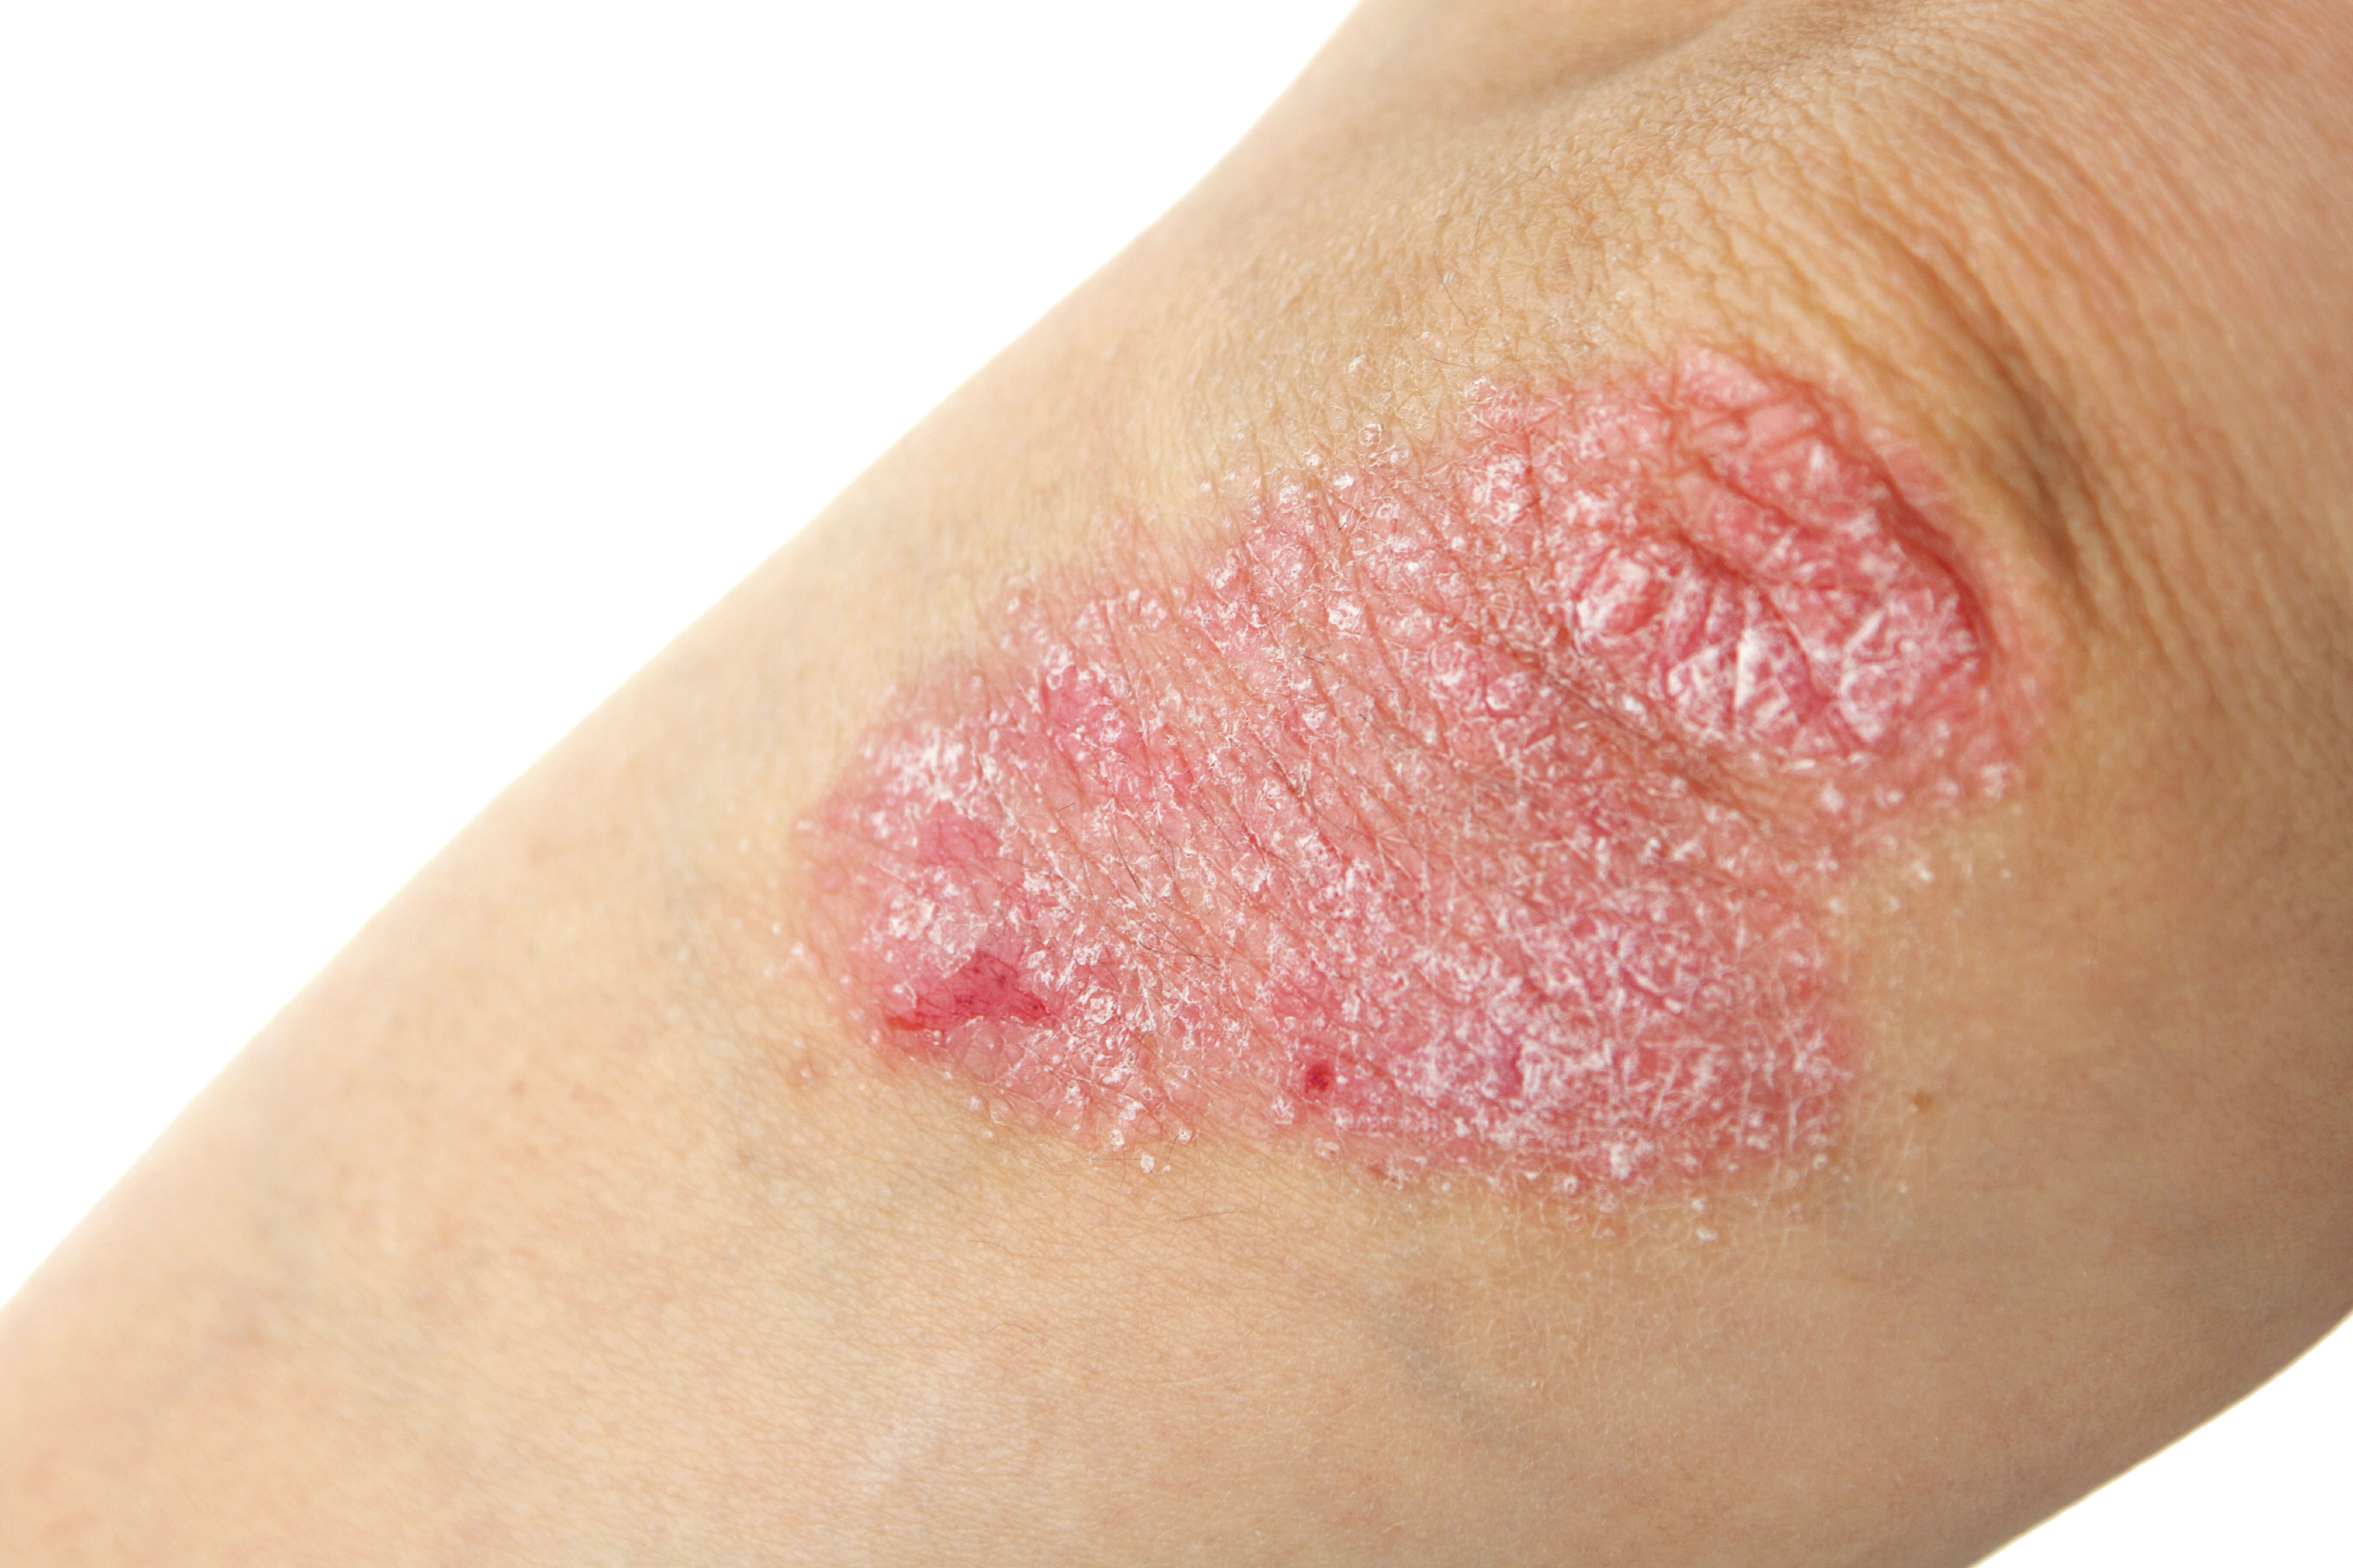 PSORIASIN®- A Treatment For Your Psoriasis?